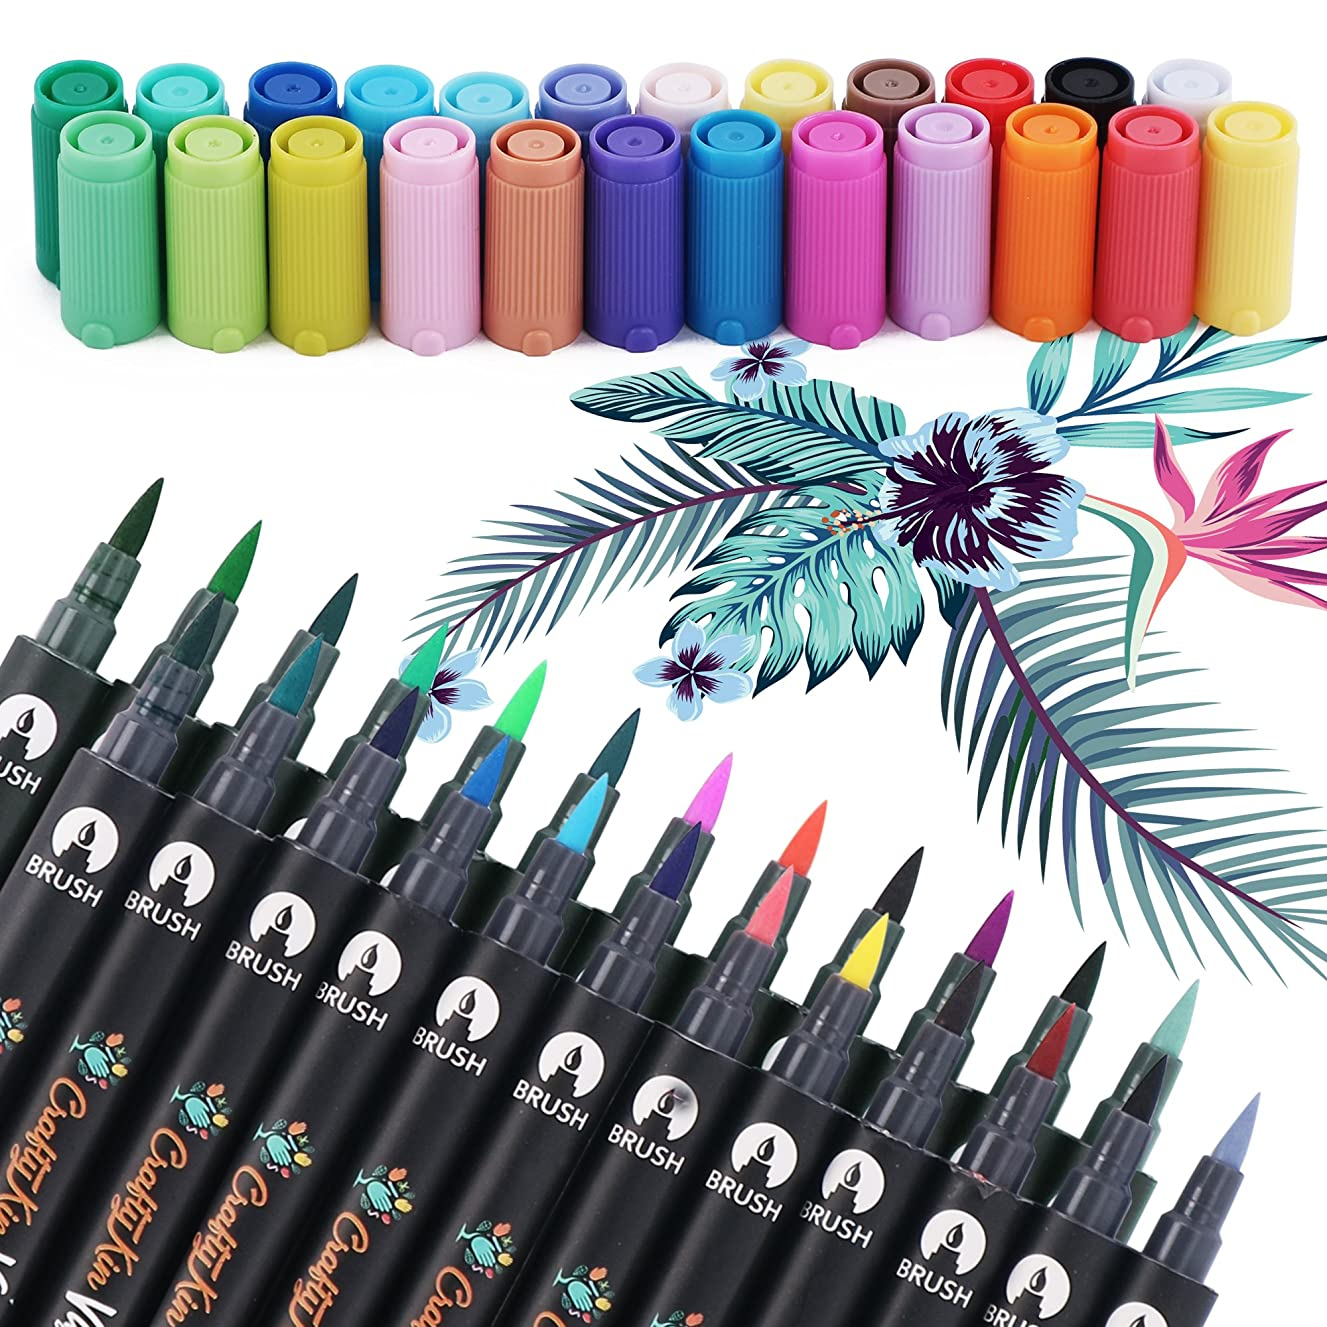 Dual Tip Watercolor Art Brush Markers (24 Colors) - Crafty Kin Non Toxic Water Based Premium Brush for Coloring, Calligraphy, Sketching, Bullet Journal